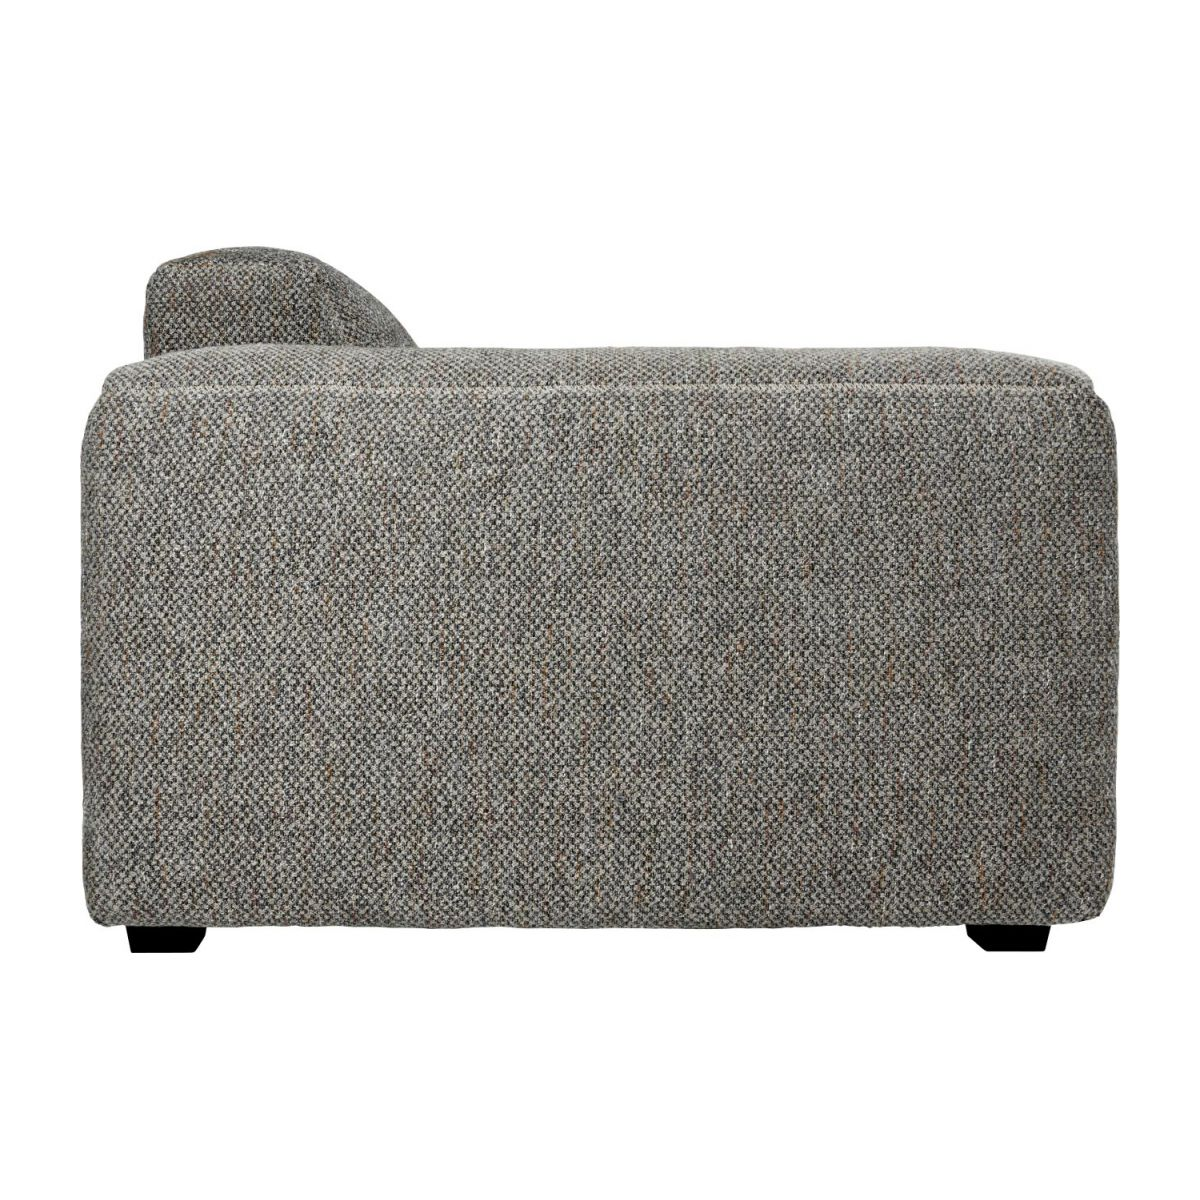 2 seater sofa in Bellagio fabric, night black n°5